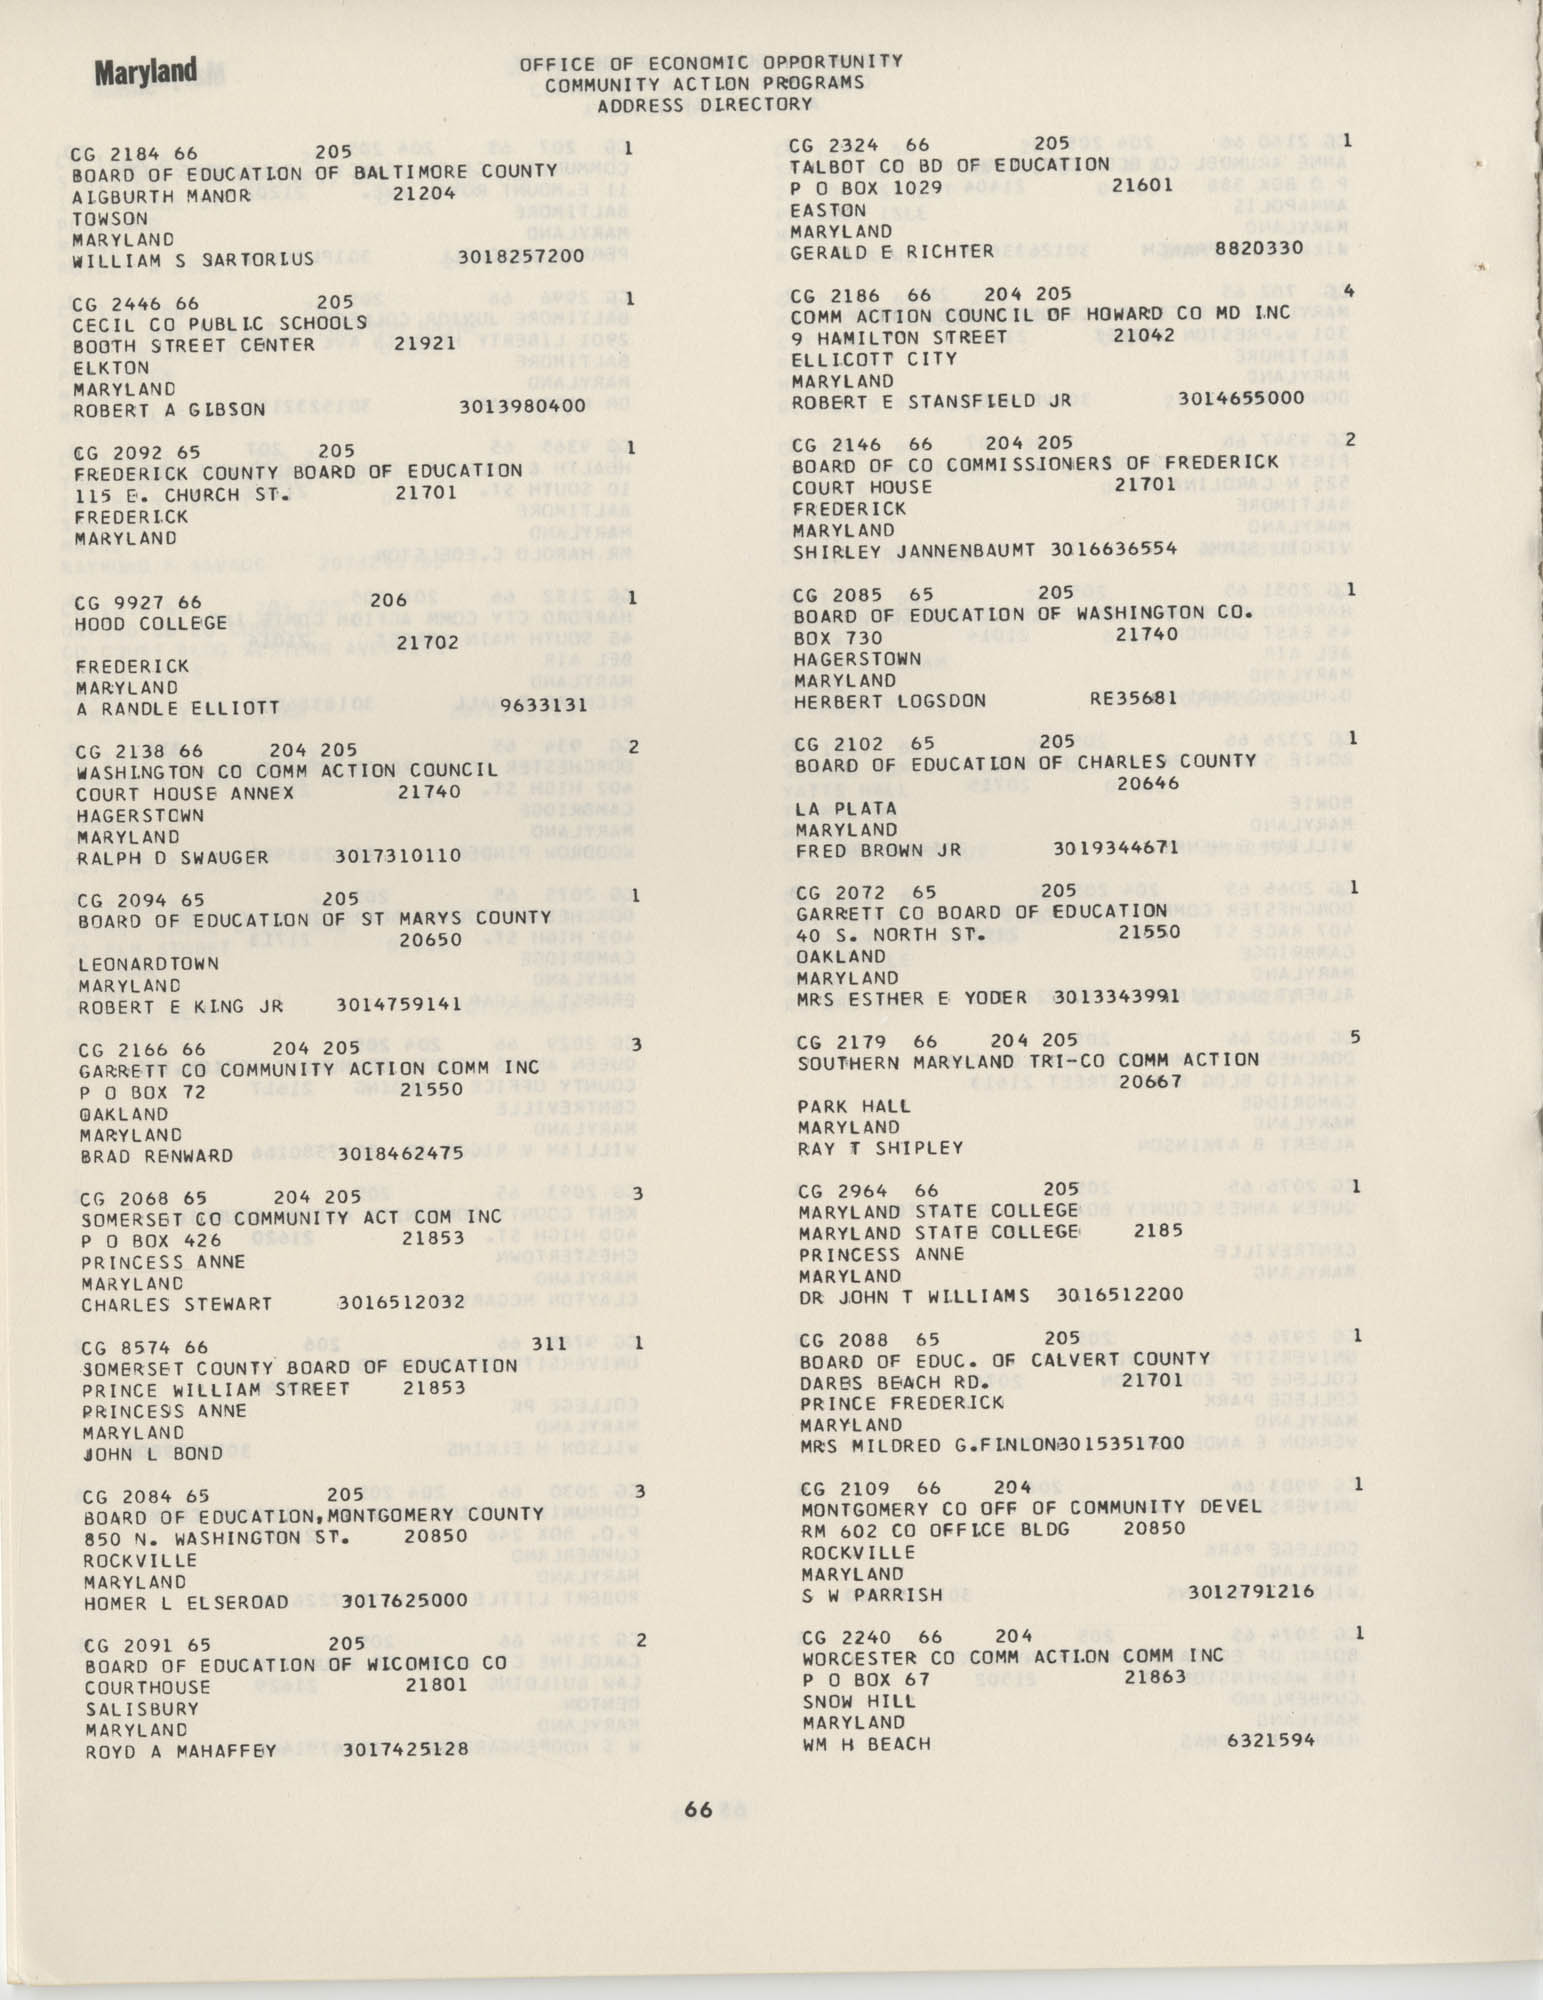 Community Action Programs Directory, June 15, 1966, Page 66